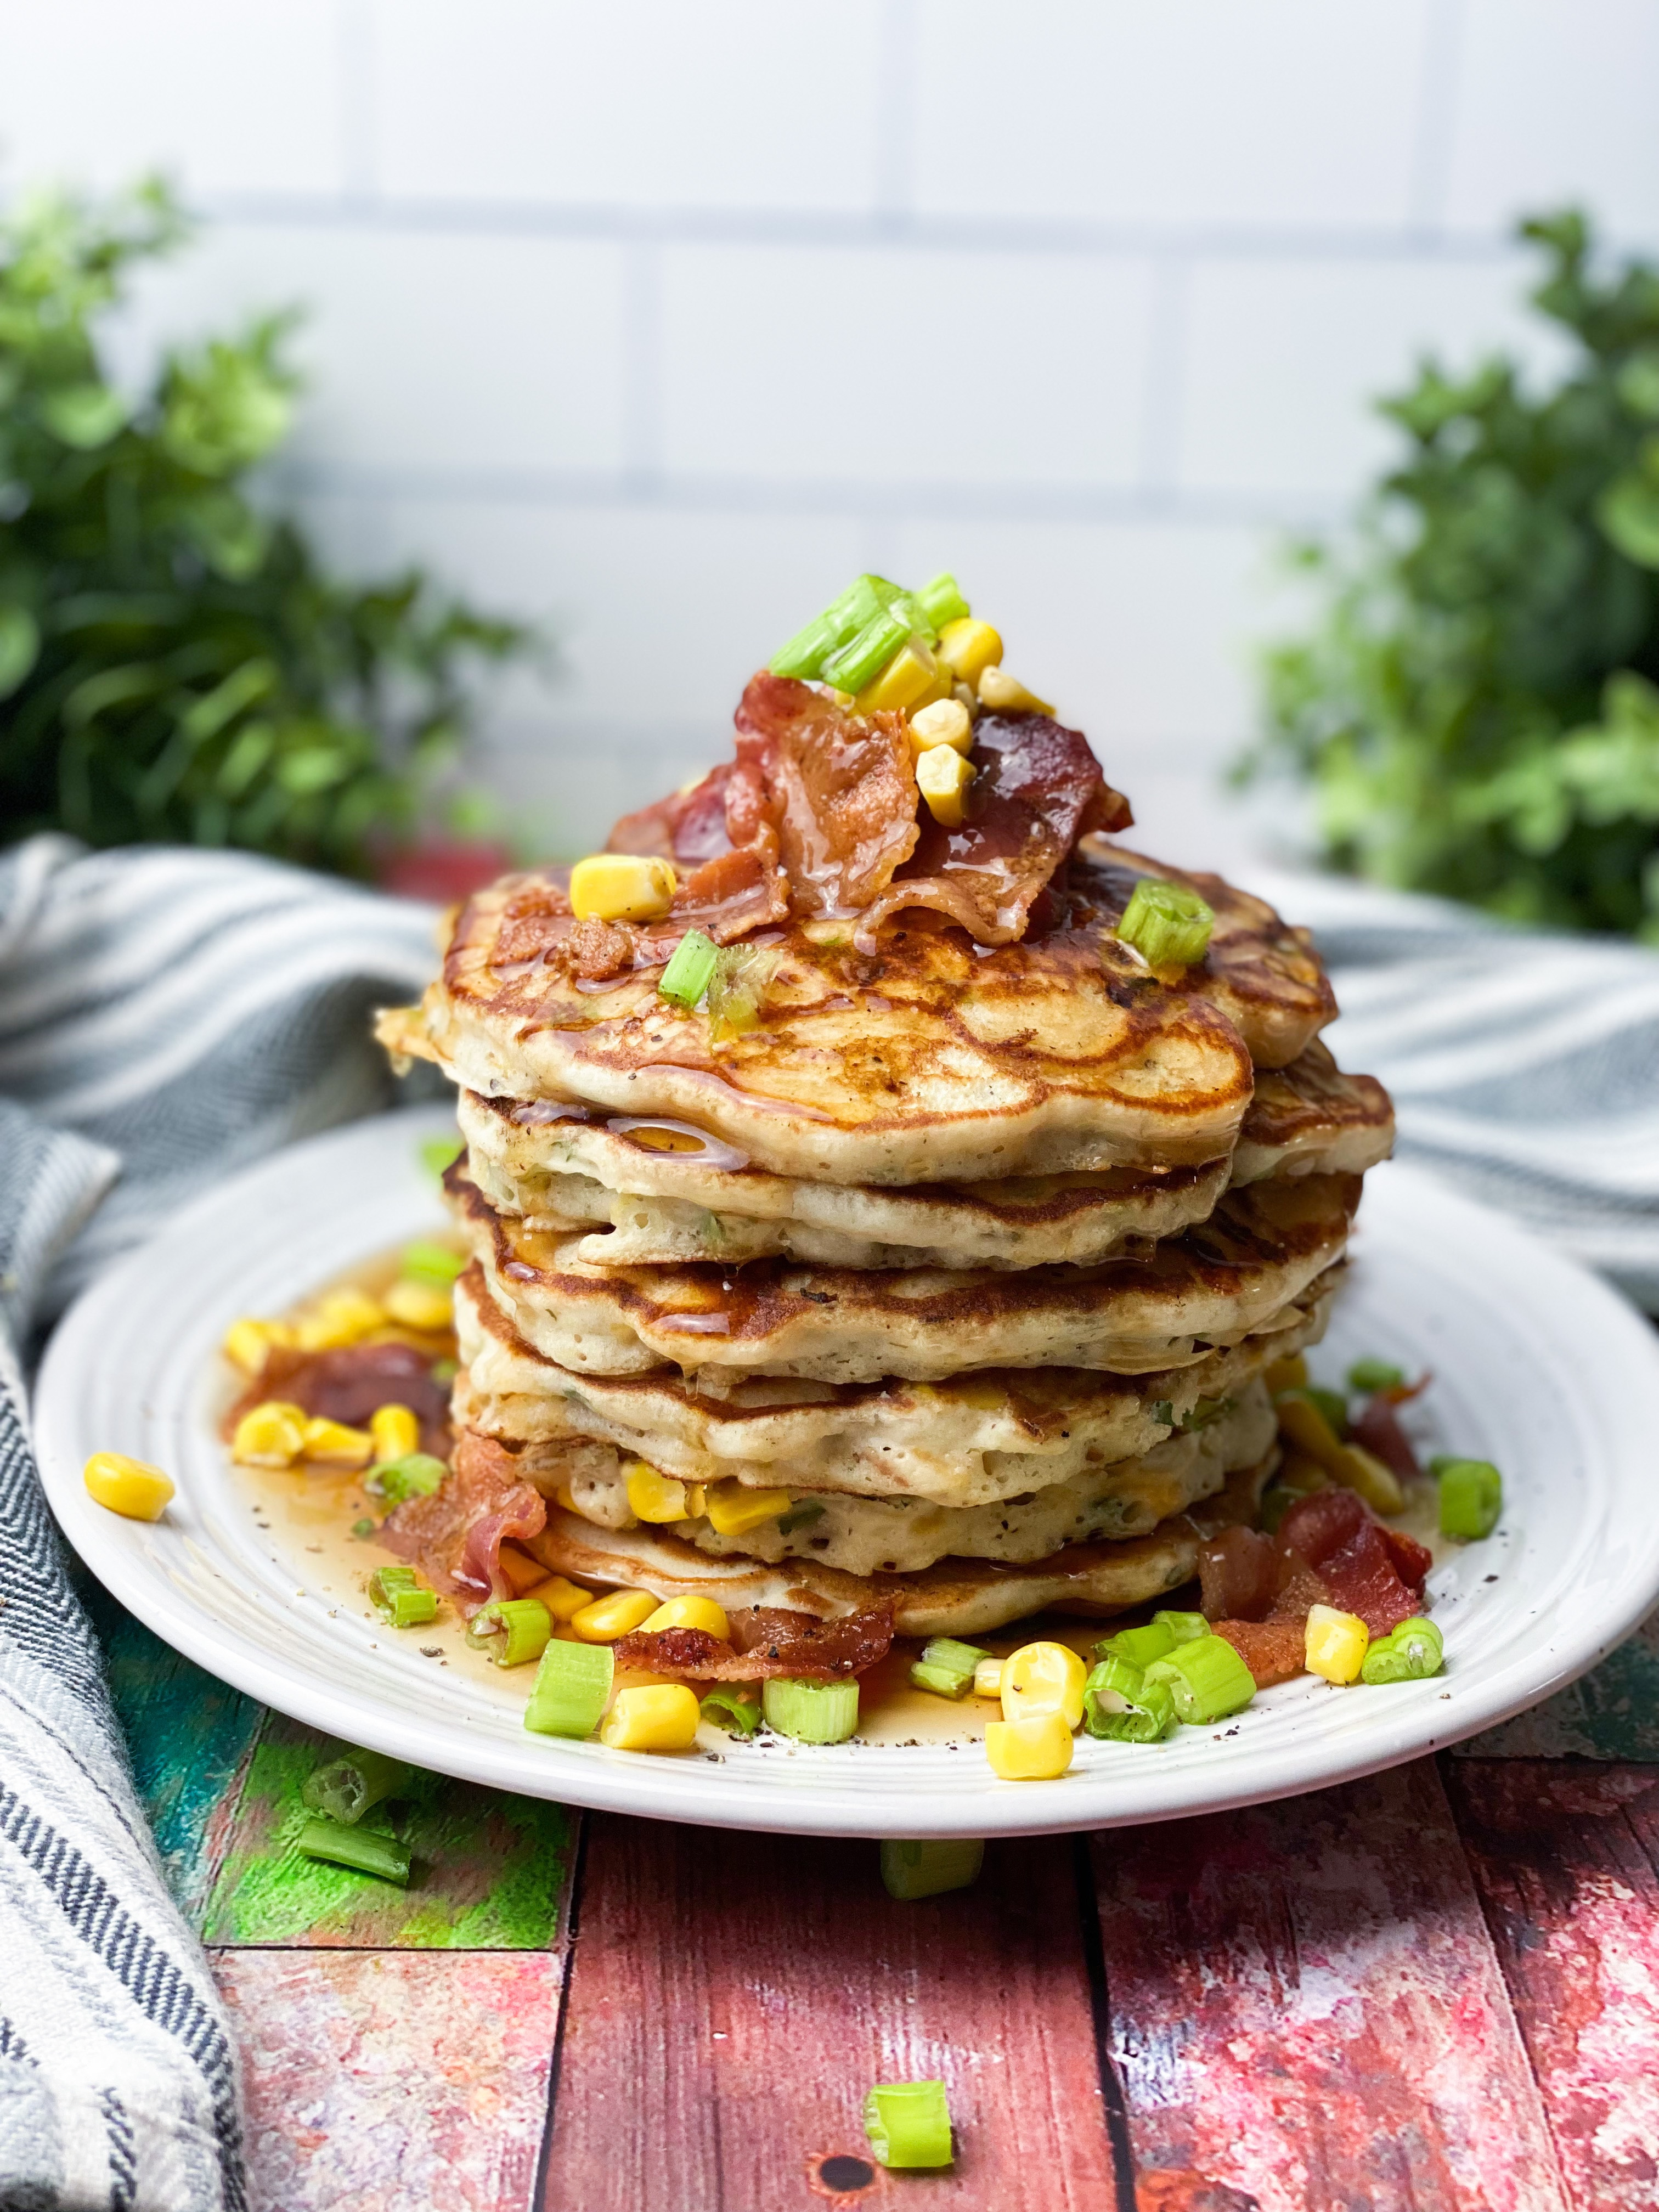 Savory Bacon, Cheddar & Corn Griddle Cakes